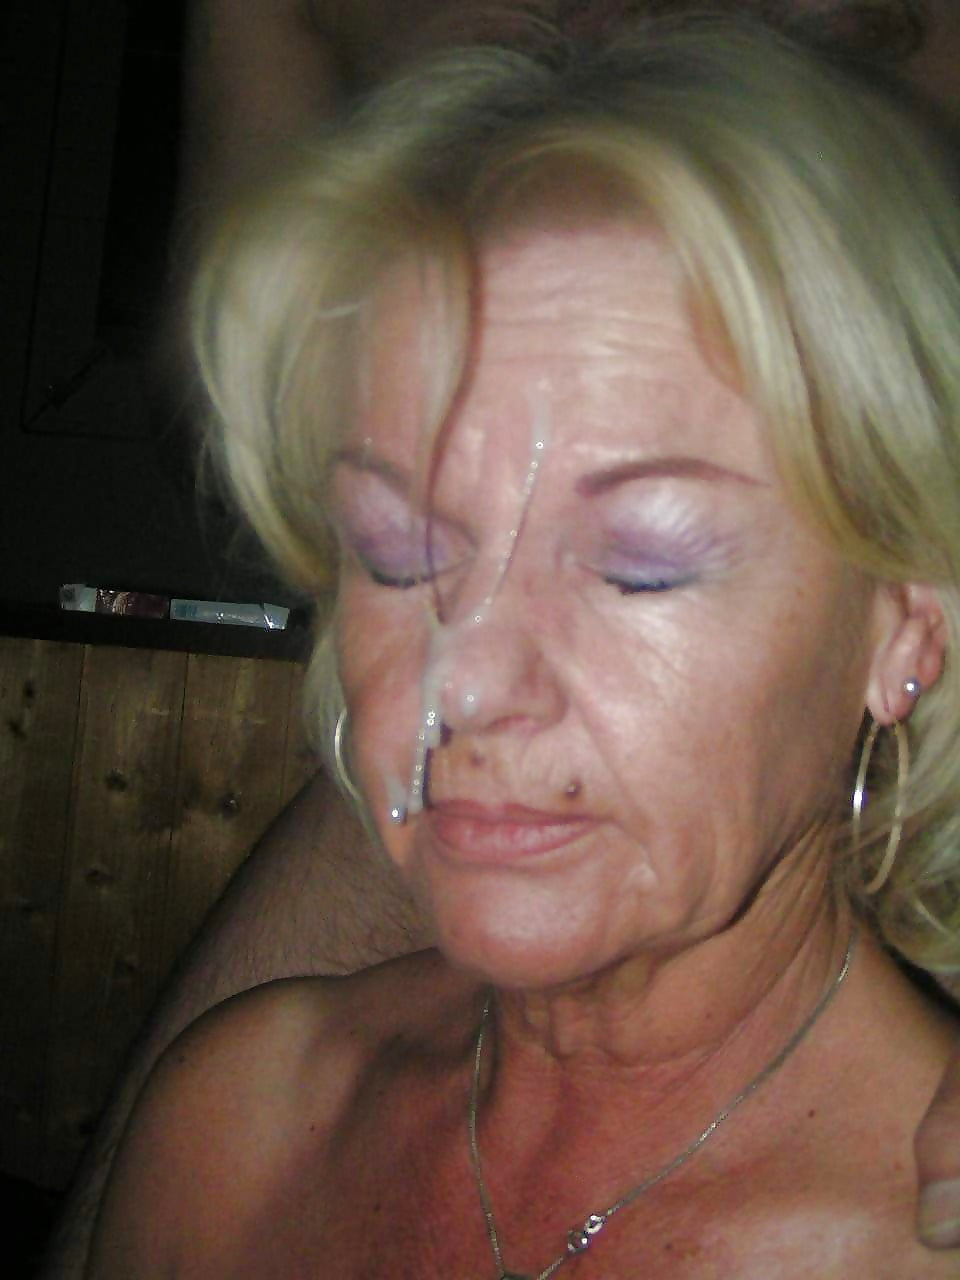 granny-unwanted-fascial-images-sexy-webcam-booty